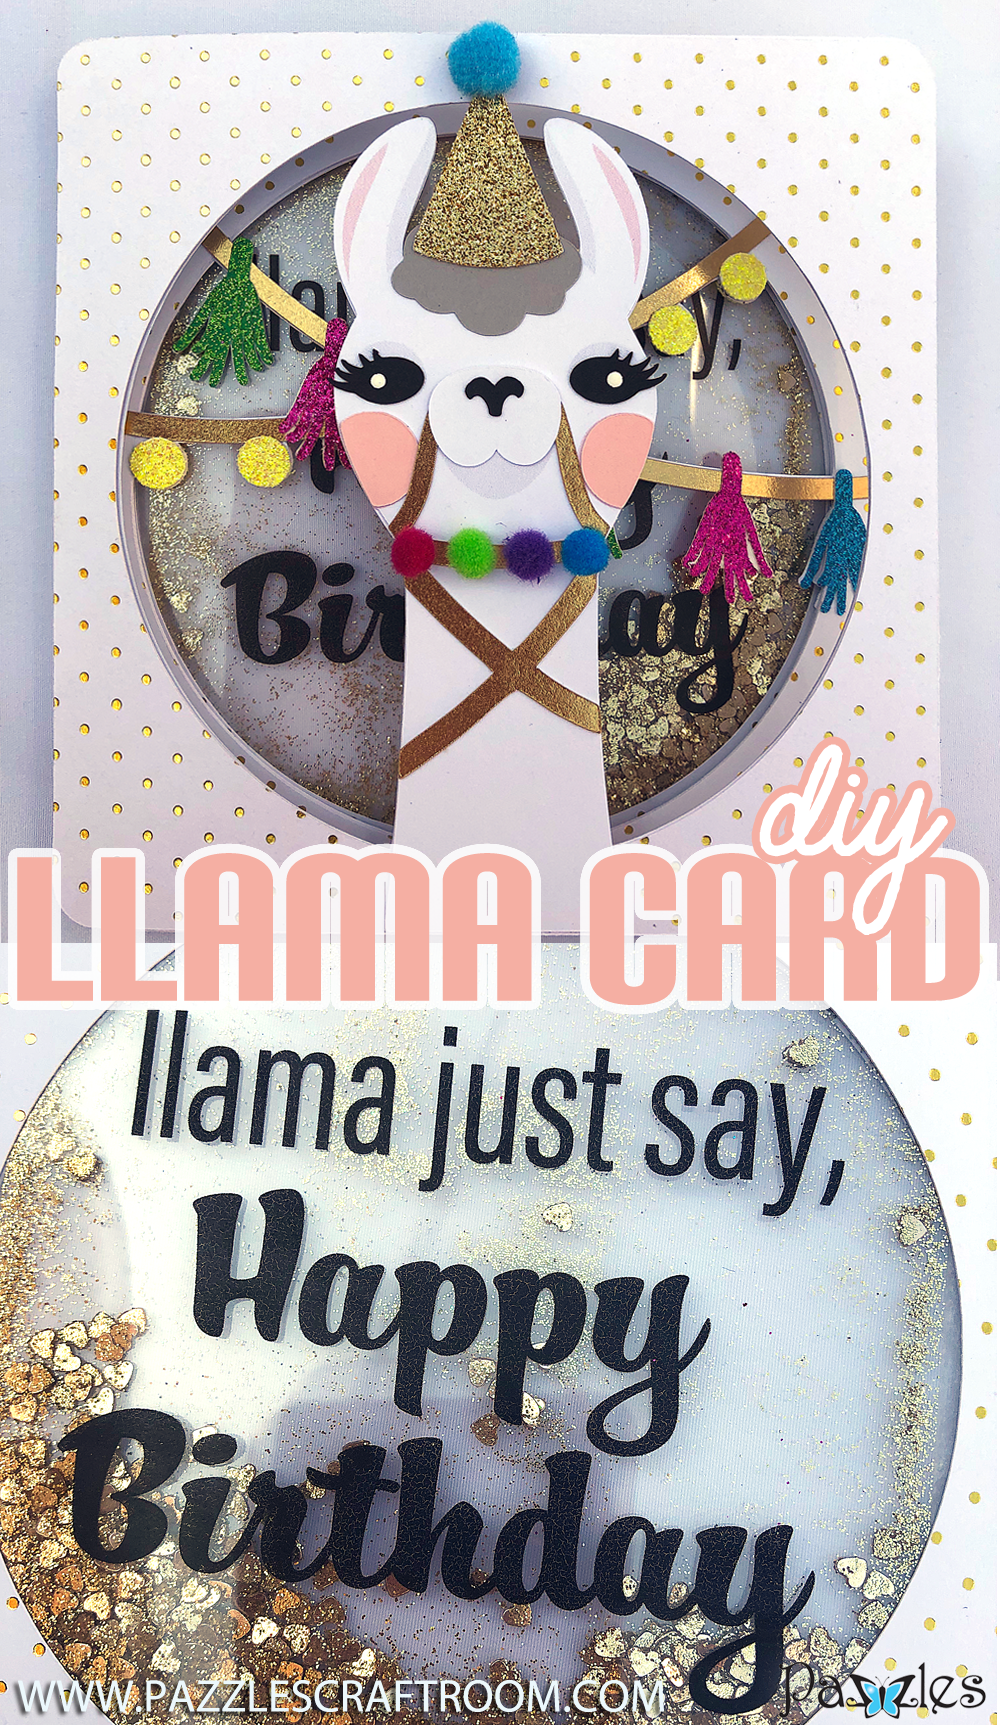 Pazzles DIY Llama Birthday Card Trifold with Glitter Shaker by SVGCuttables. Instant Download in SVG, AI, and WPC. Compatible with Pazzles, Cameo Silhouette, and Cricut.